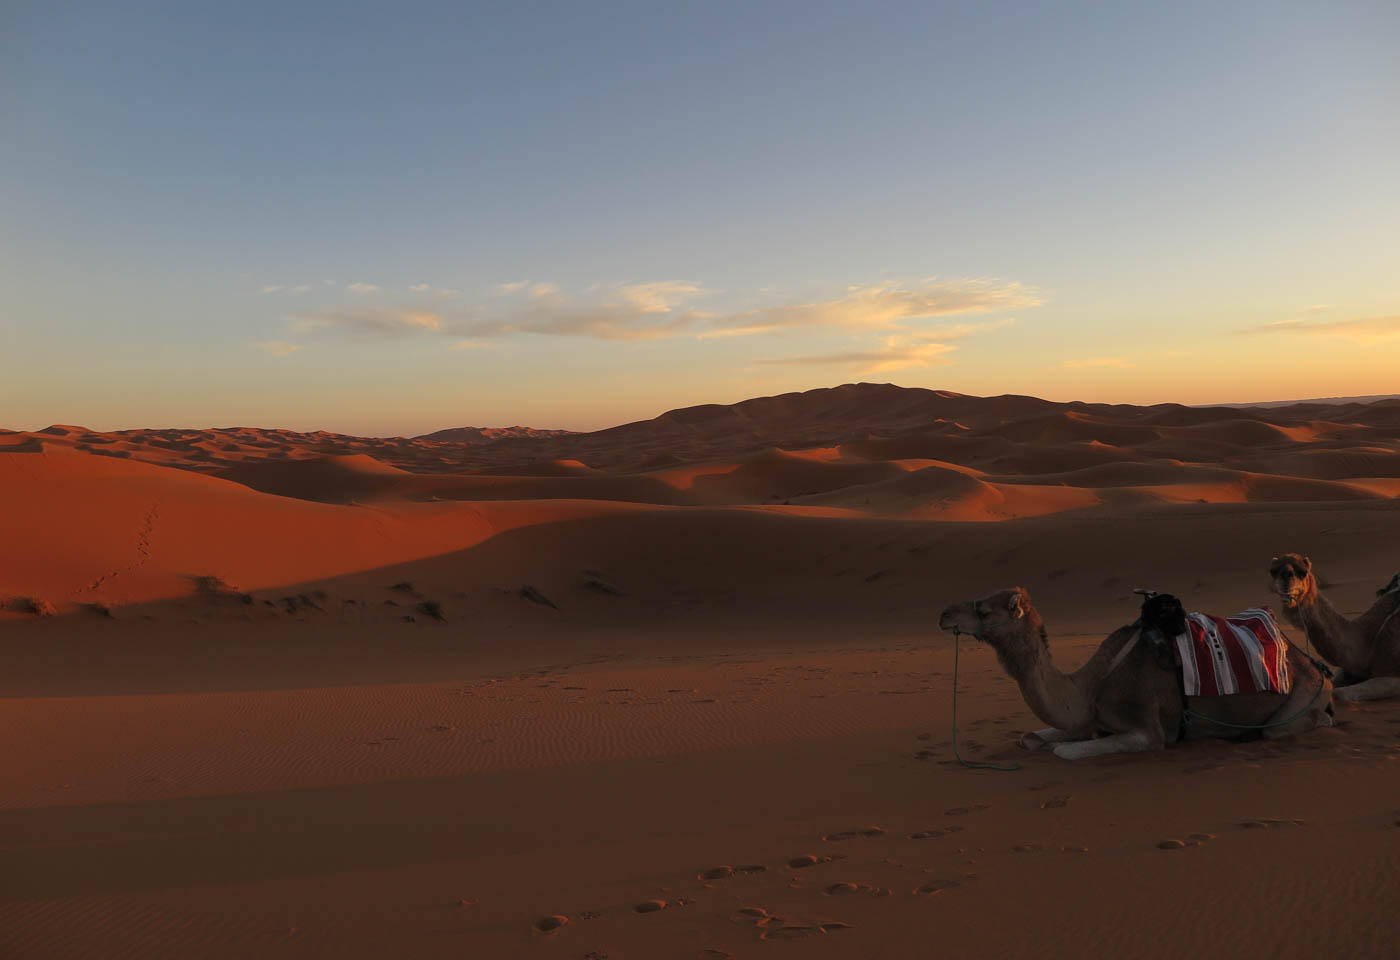 Camel in the desert, taken with the Canon PowerShot G1X Mark II camera